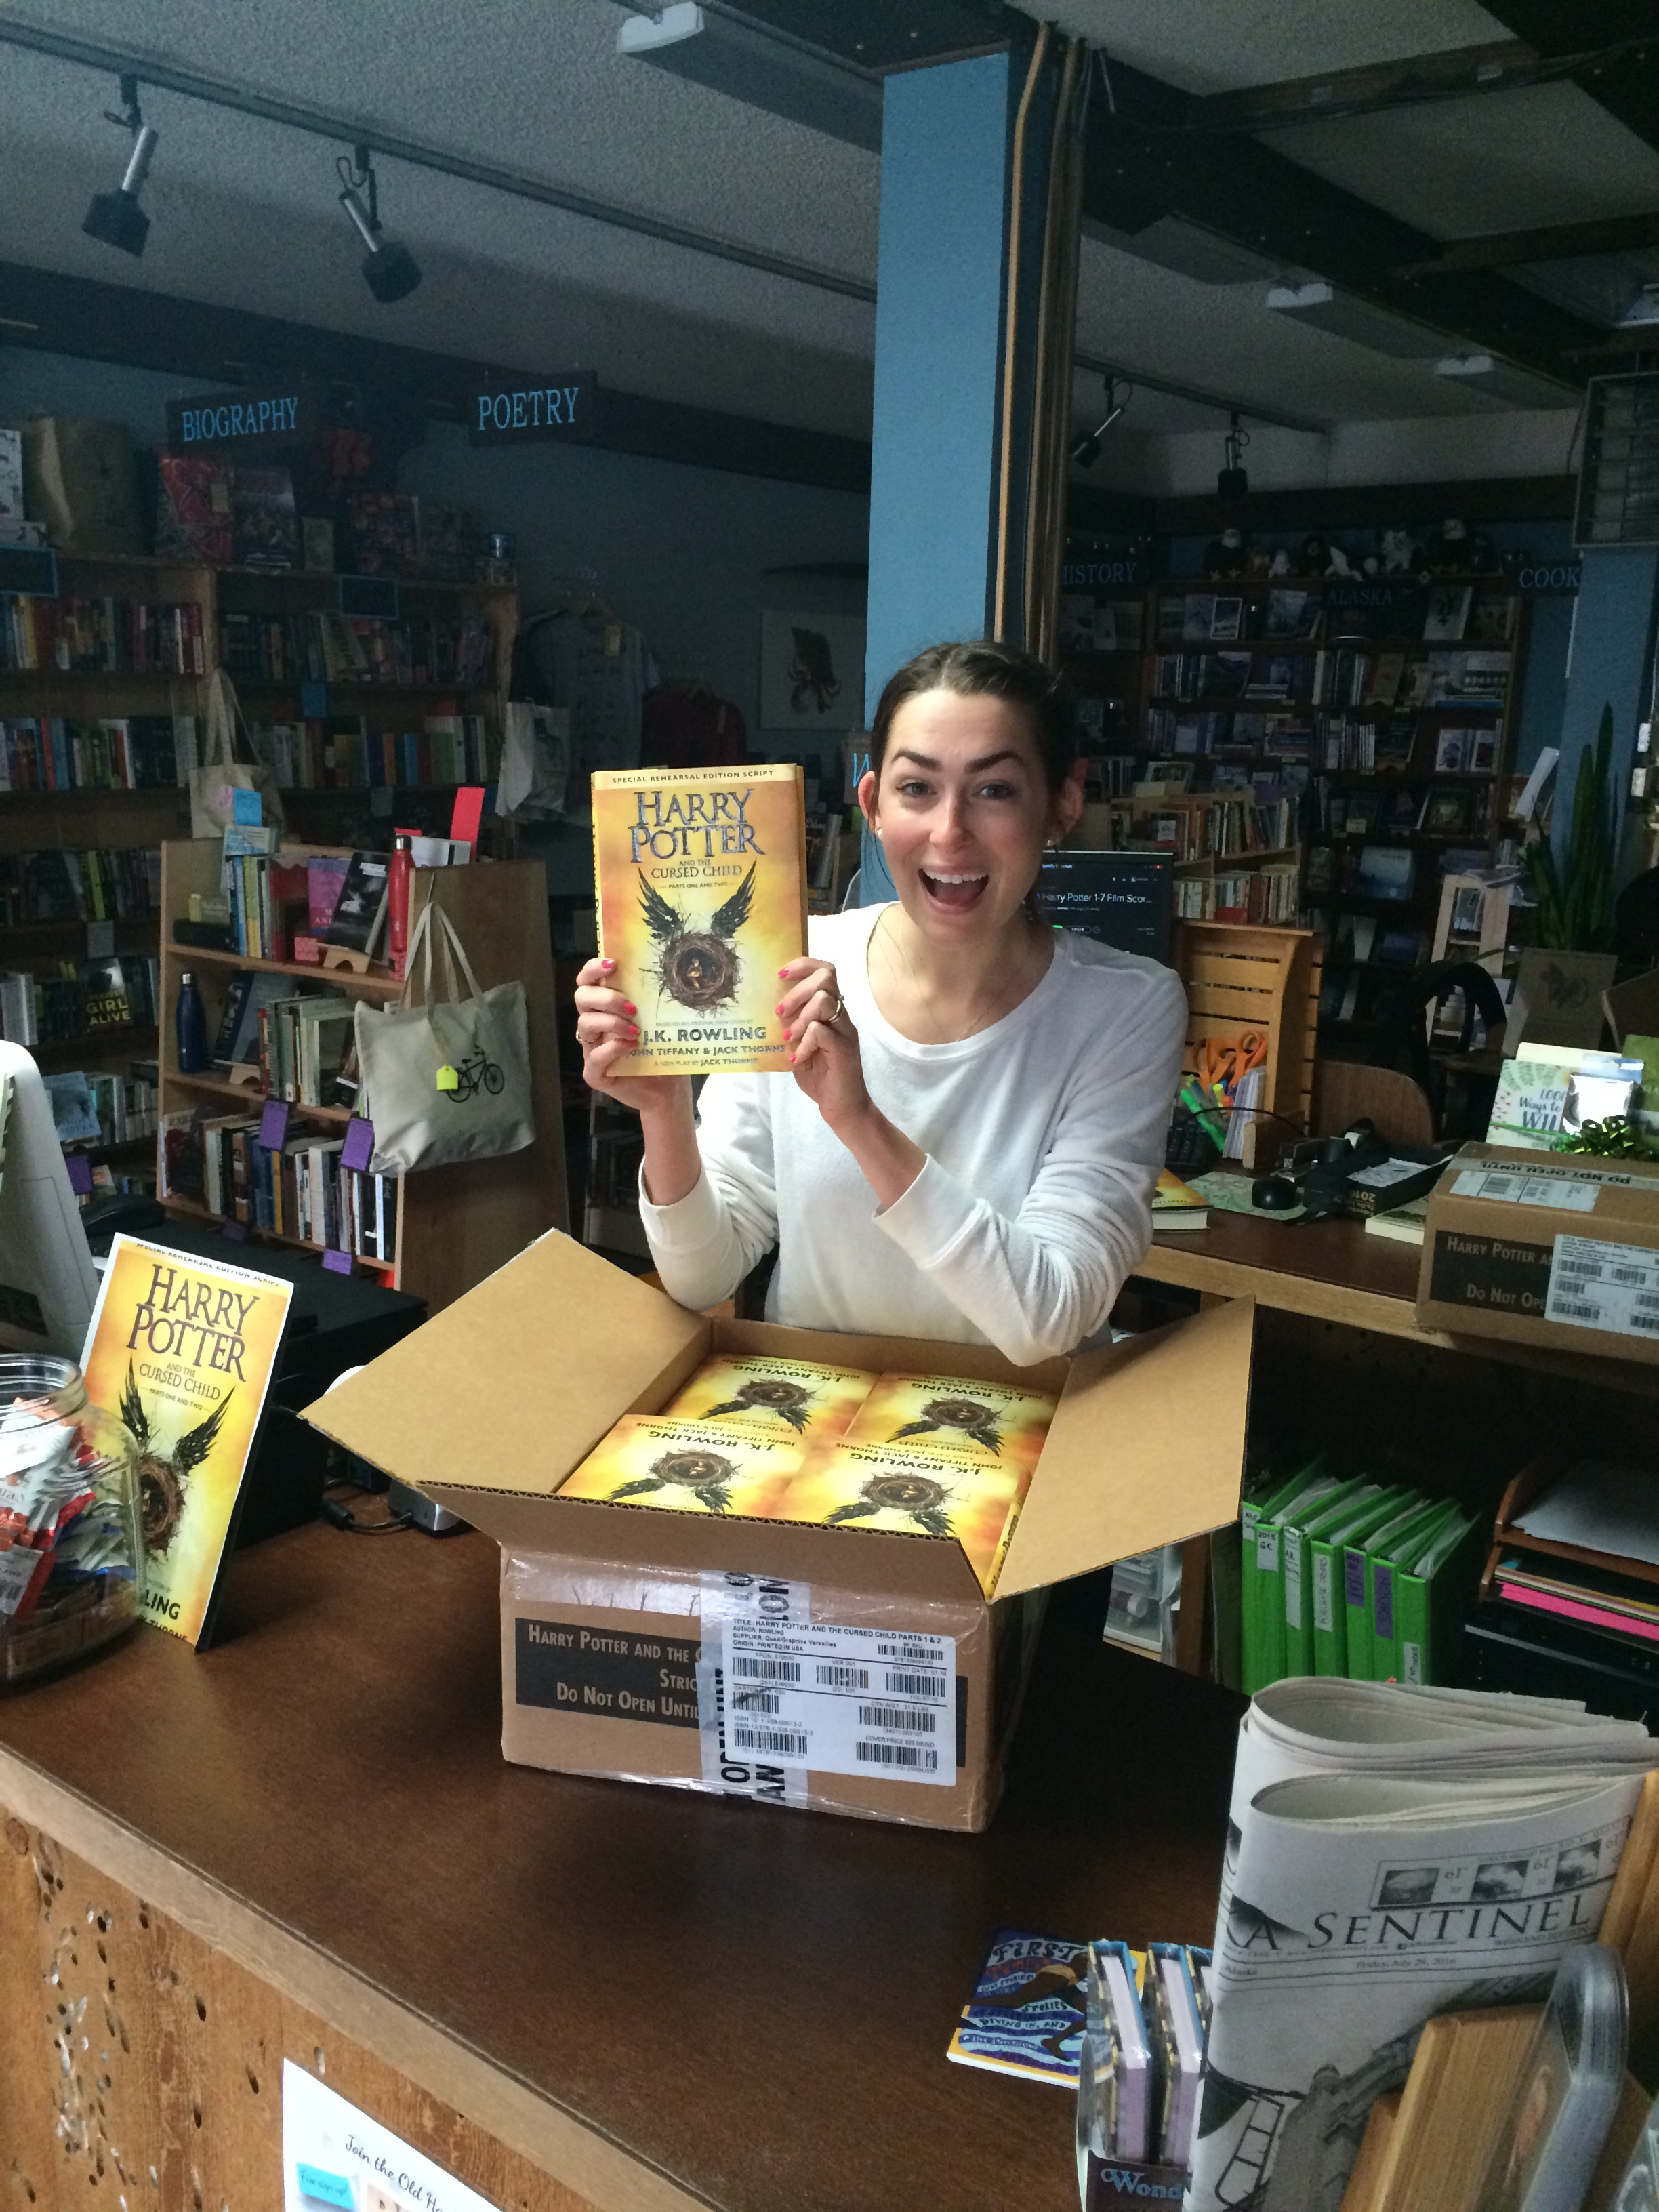 Bookseller opening crate full of copies of Harry Potter and the Cursed Child.